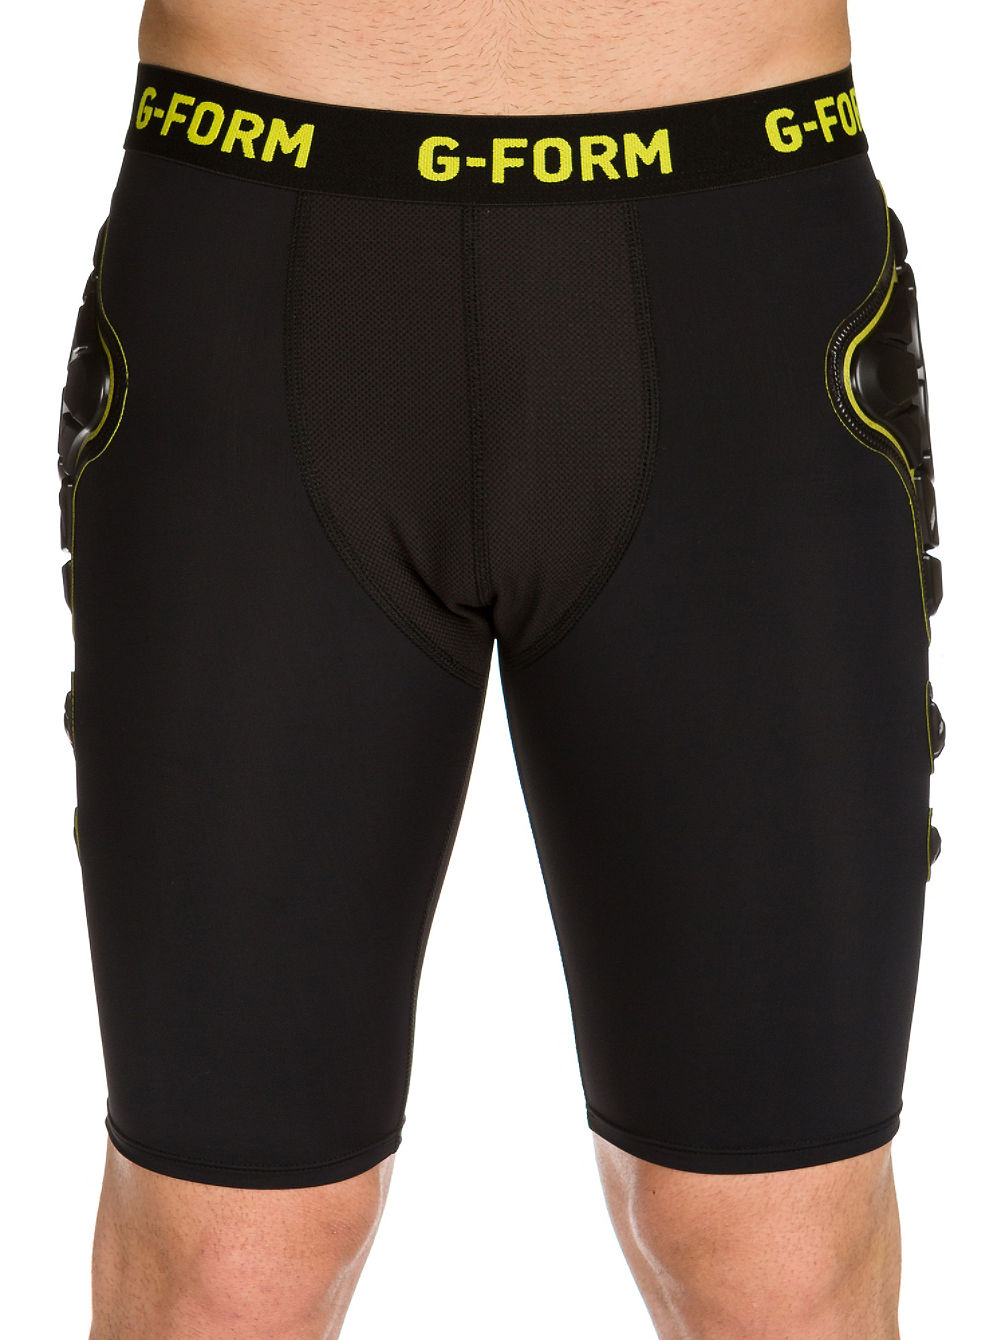 Pro-G Compression Shorts Protektorhose